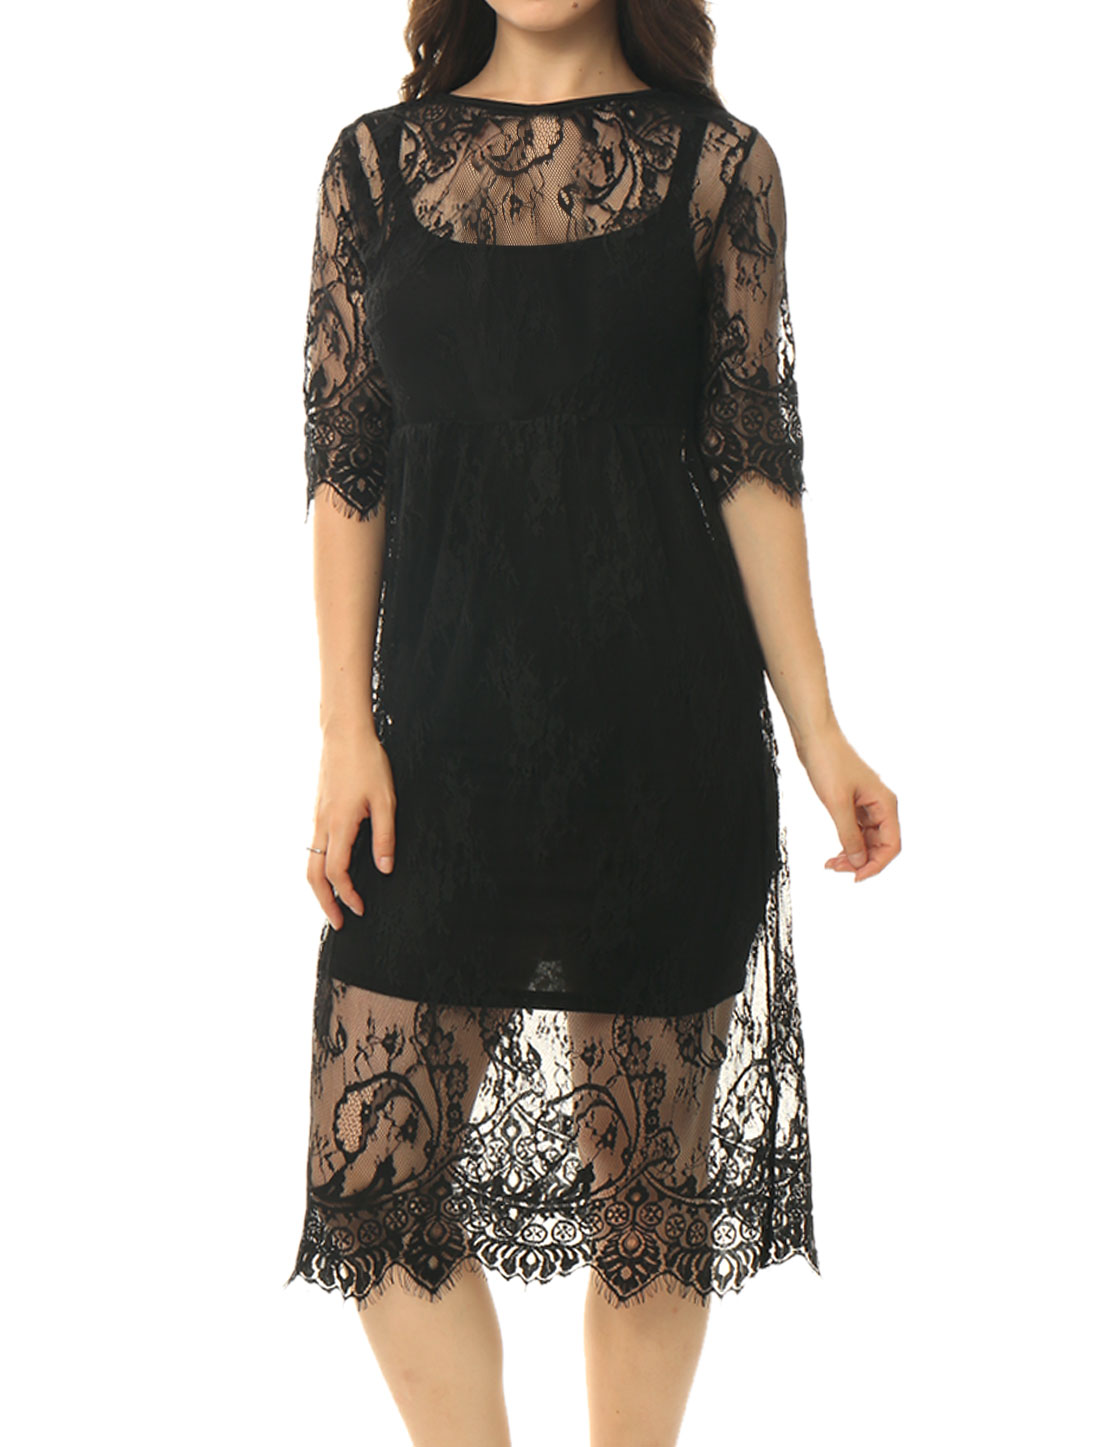 Women Split Back Scalloped Cover-Up Lace Tunic Dress Black S